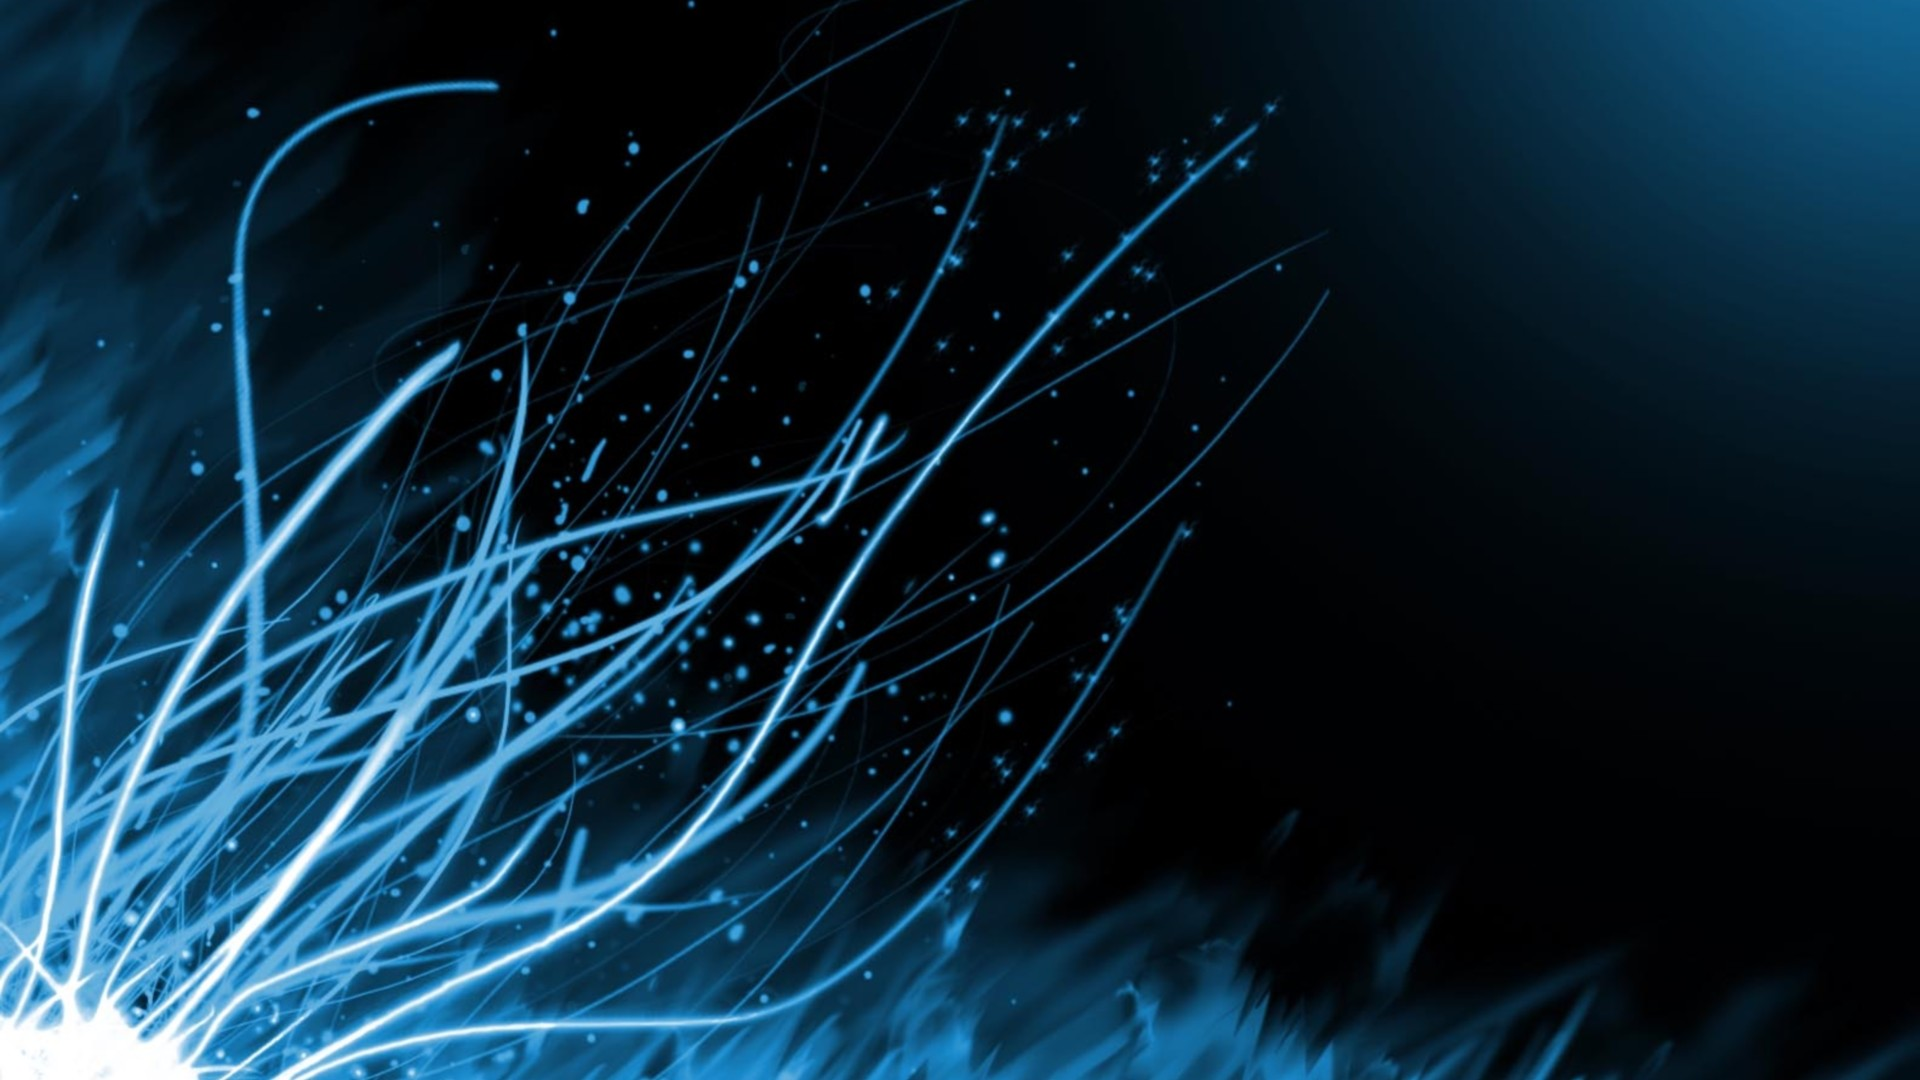 Black And Blue Abstract Backgrounds Abstract